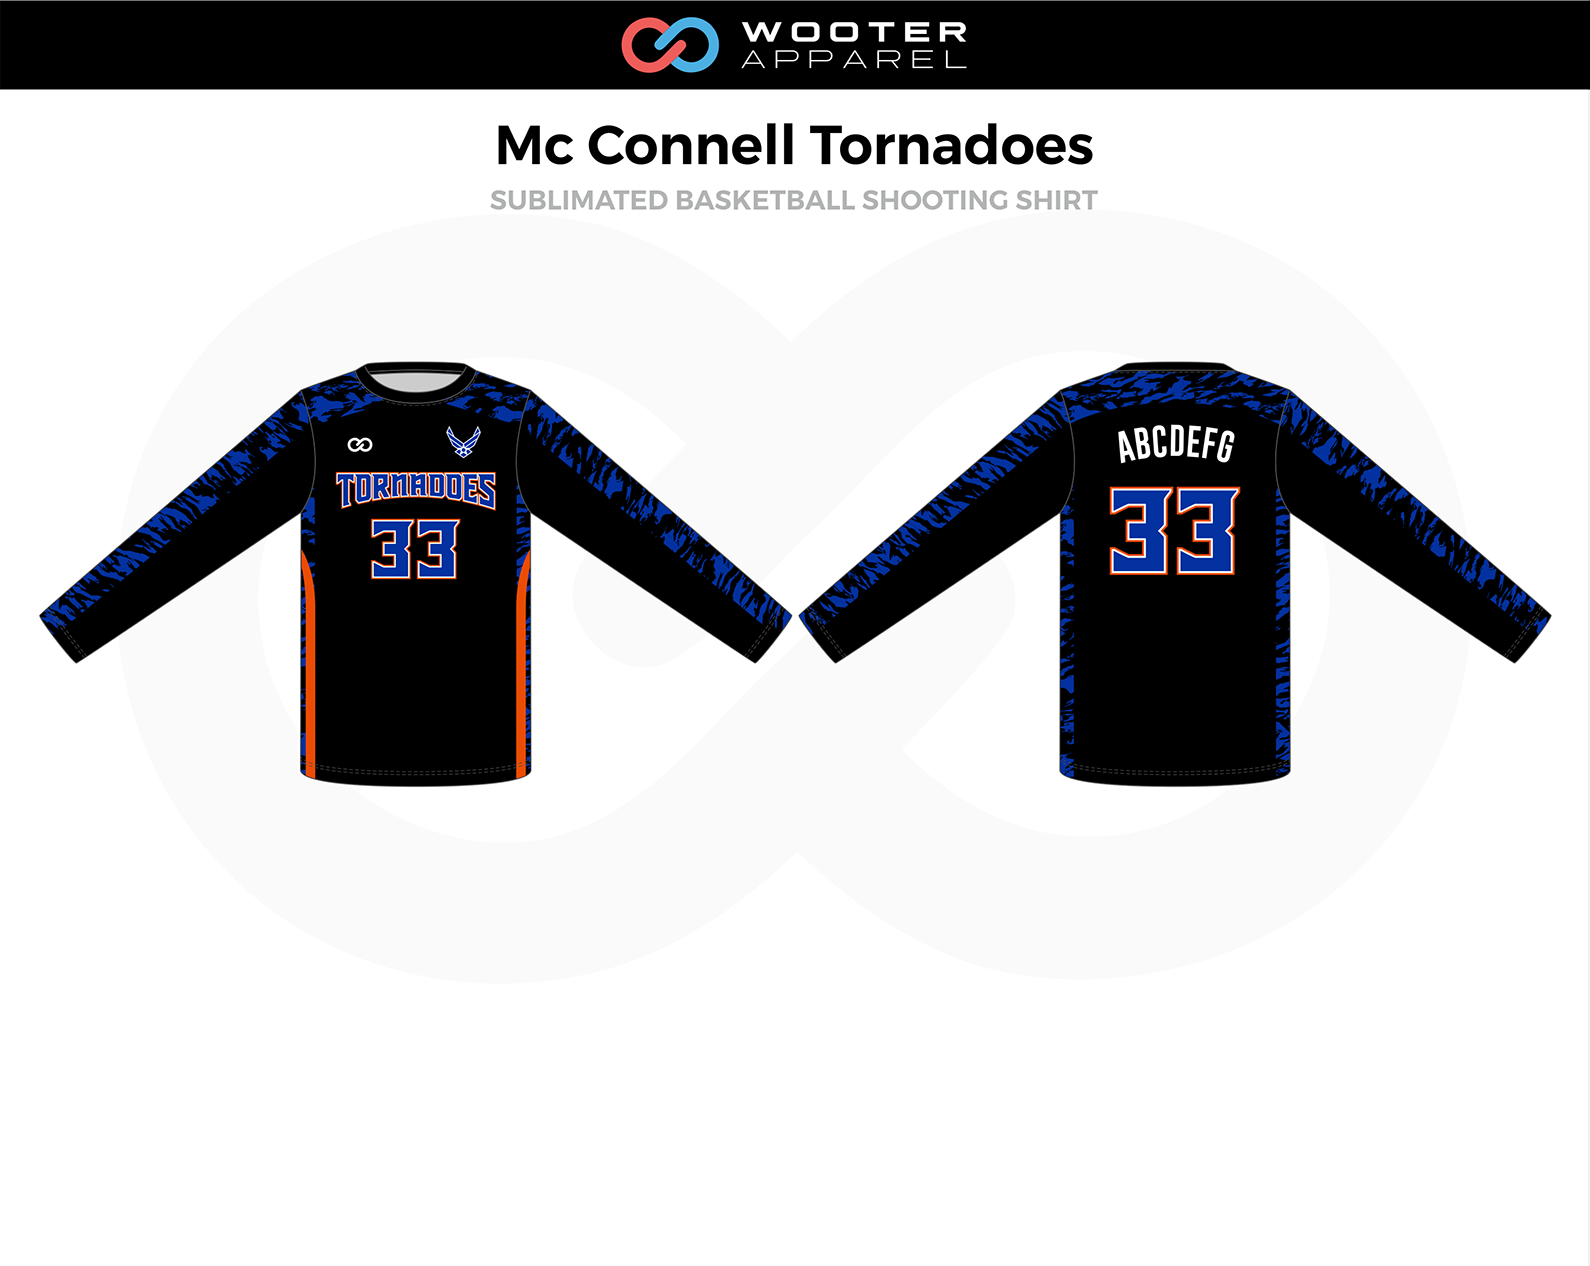 04_McConnell Tornadoes basketball.png